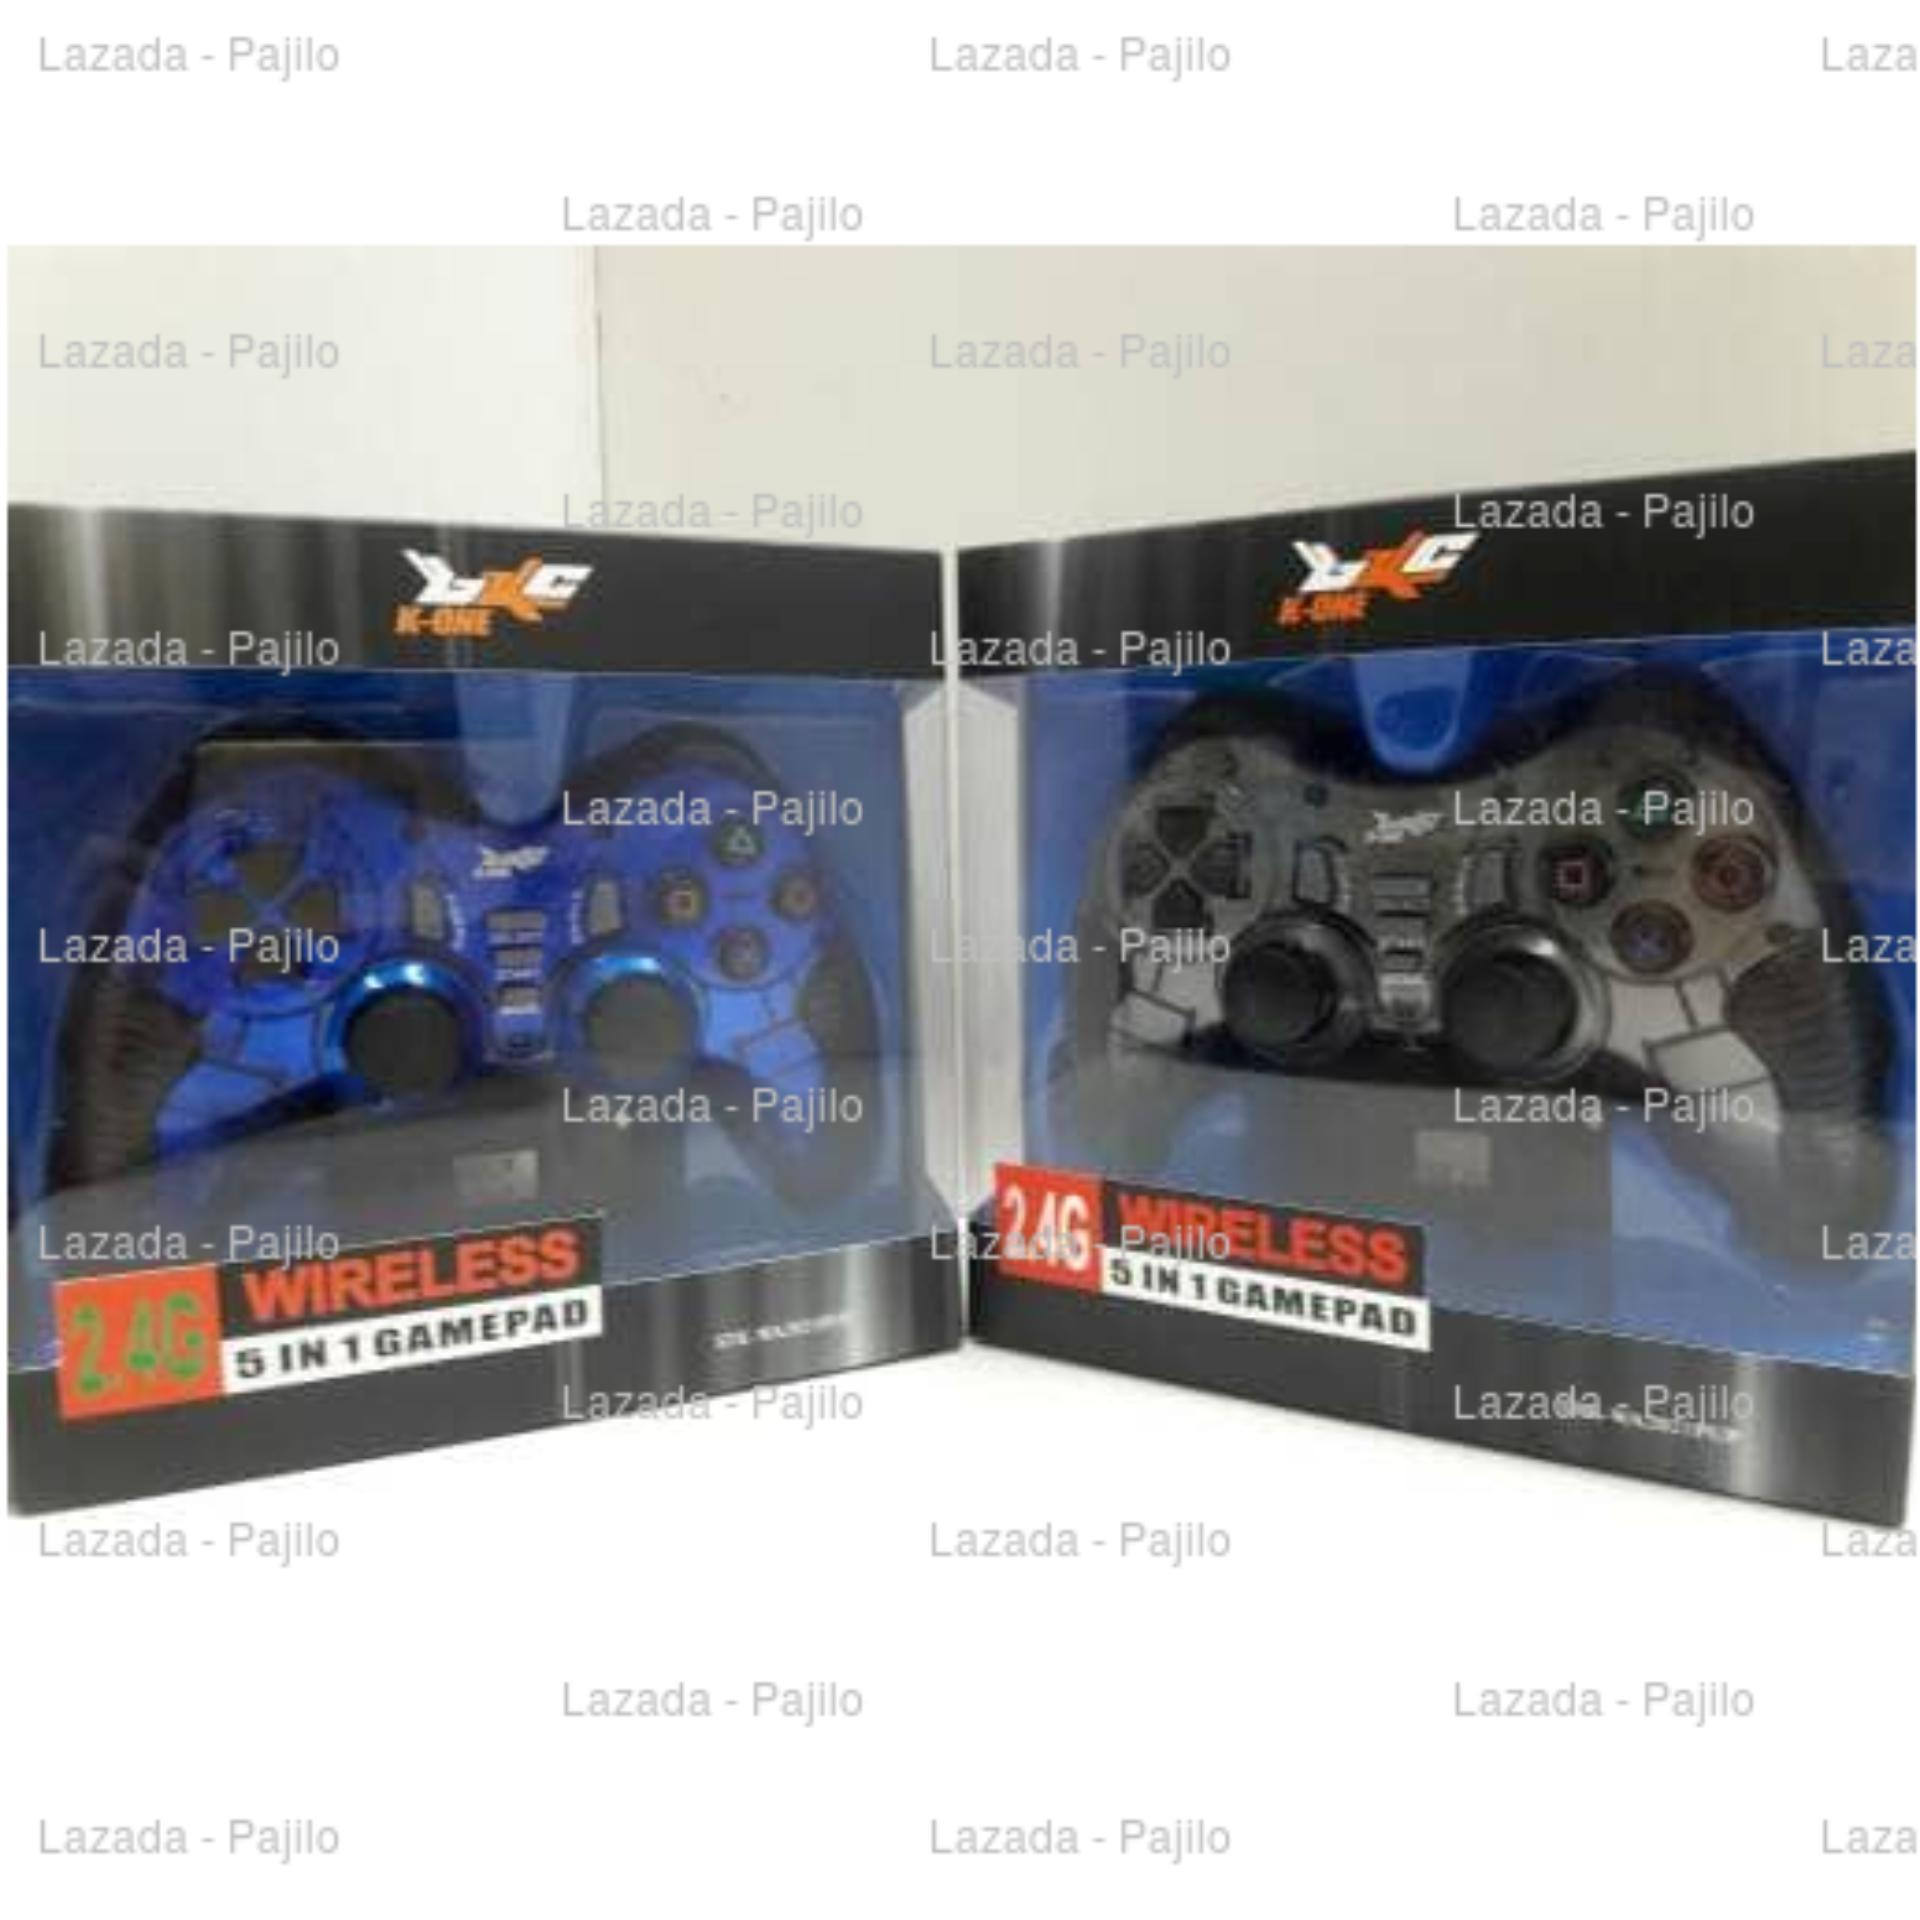 K One Gamepad Stik Wireless 24g Support Ps2 Ps3 Pc Android Tv Biru M Tech Game Pad Stick Single Turbo 5 In 1 Playstation 2